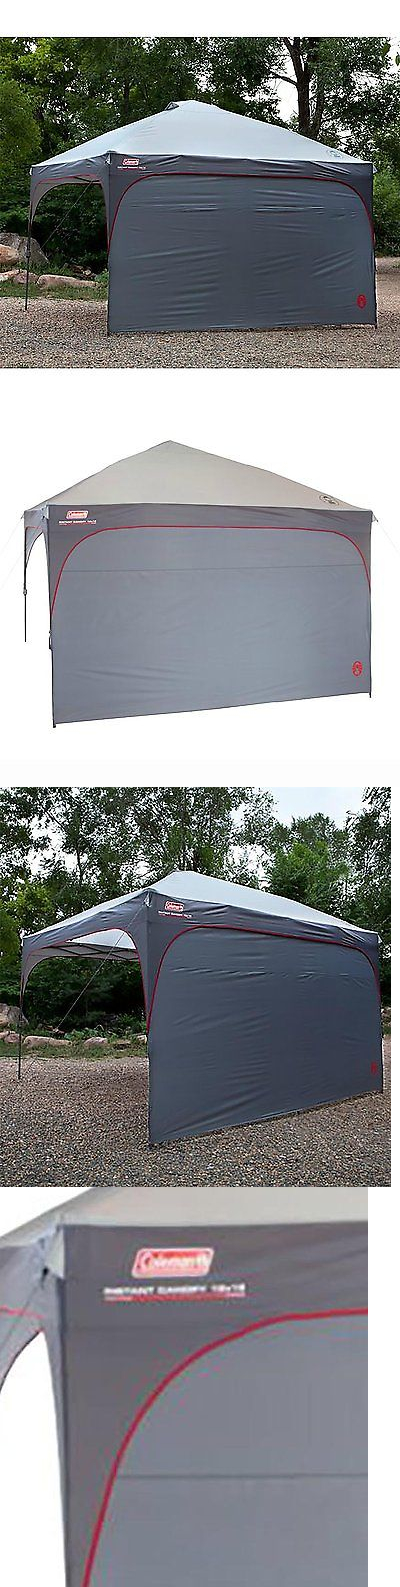 Tent and Canopy Accessories 36120 Coleman Instant Canopy Sunwall Accessory - 12 X 12 - & Tent and Canopy Accessories 36120: Coleman Instant Canopy Sunwall ...